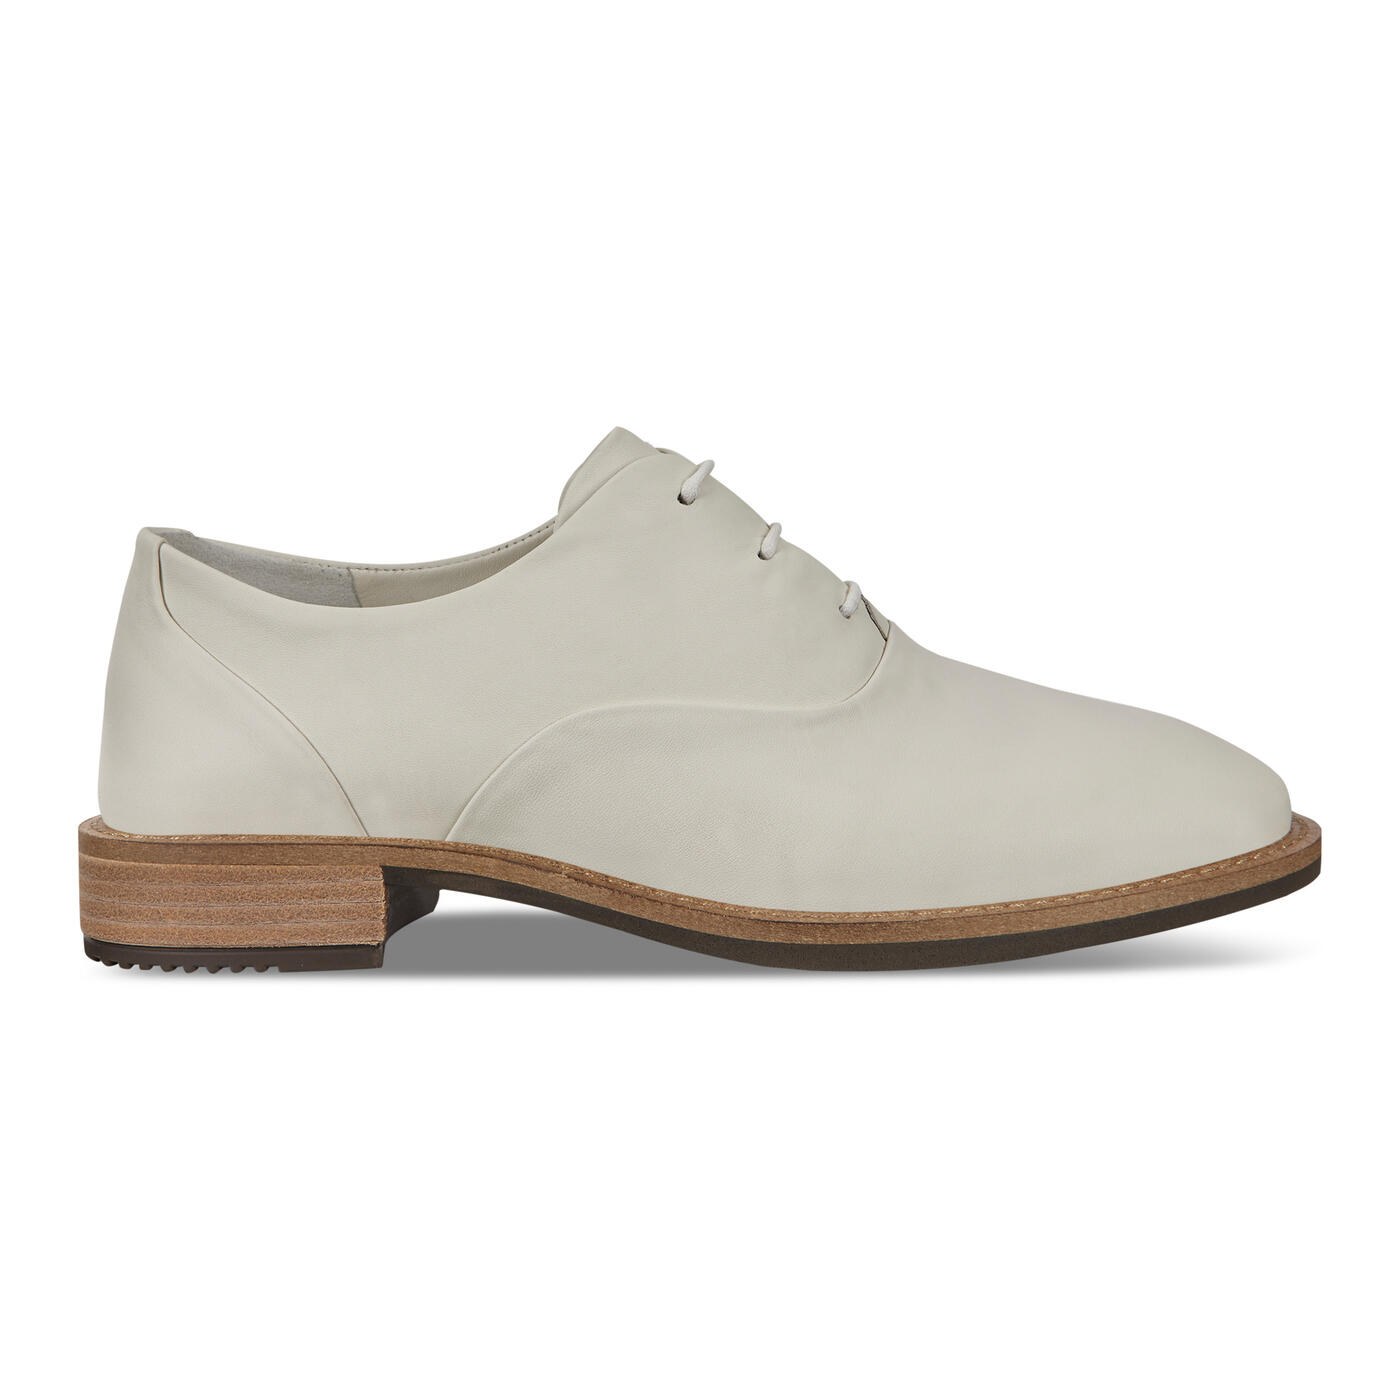 ECCO Sartorelle 25 Tailored Women's Dress Shoes